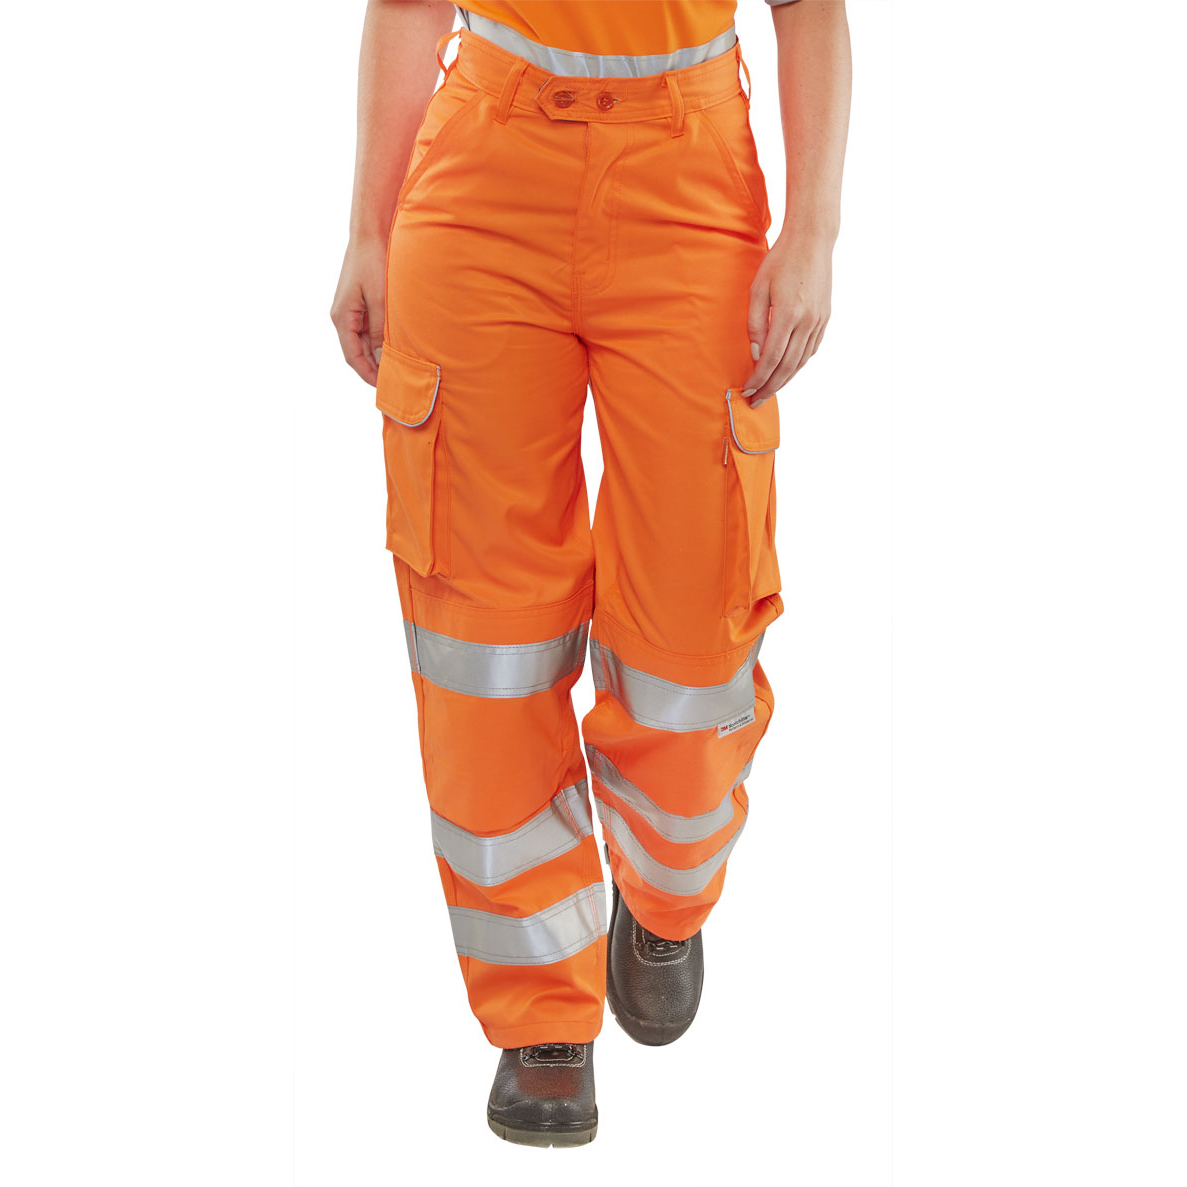 Ladies BSeen Rail Spec Trousers Ladies Teflon Hi-Vis Reflective Orange 26 Ref LRST26 *Up to 3 Day Leadtime*